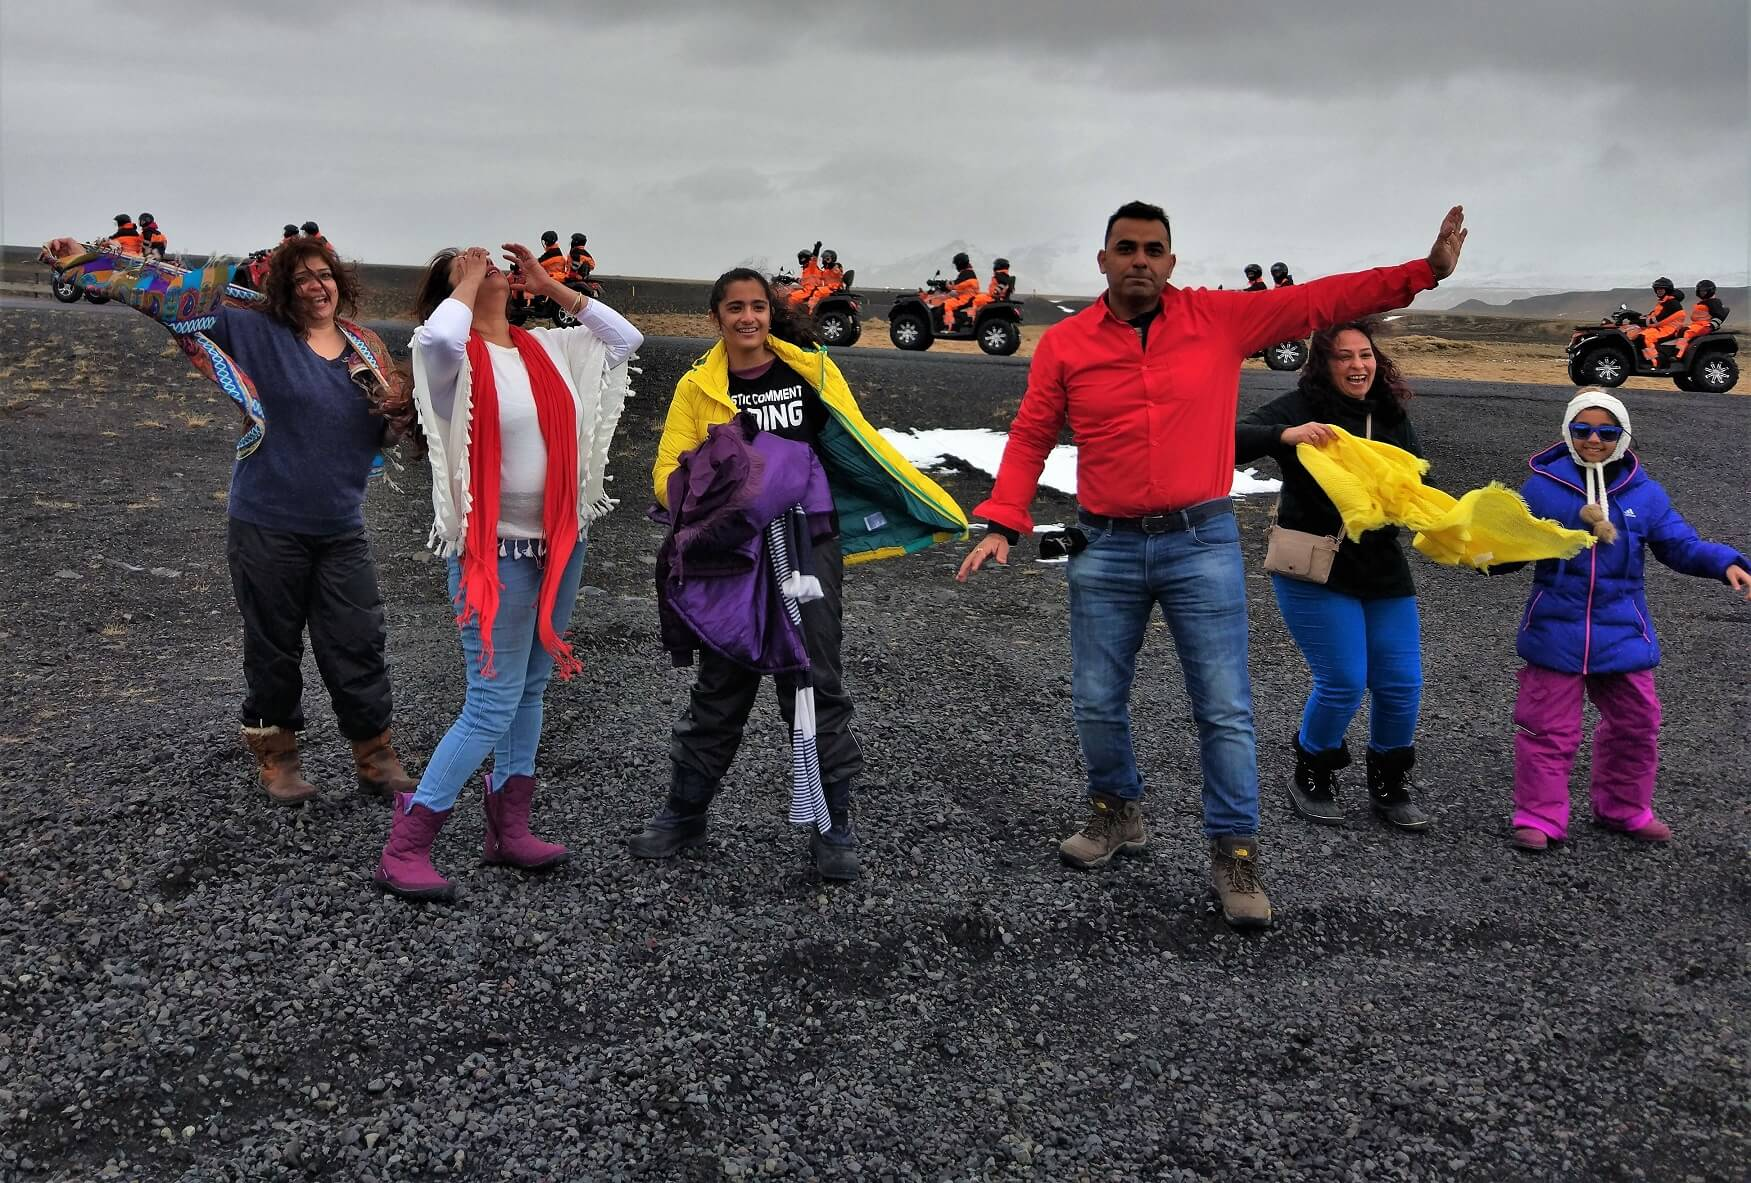 Group Fun near VIK, Iceland